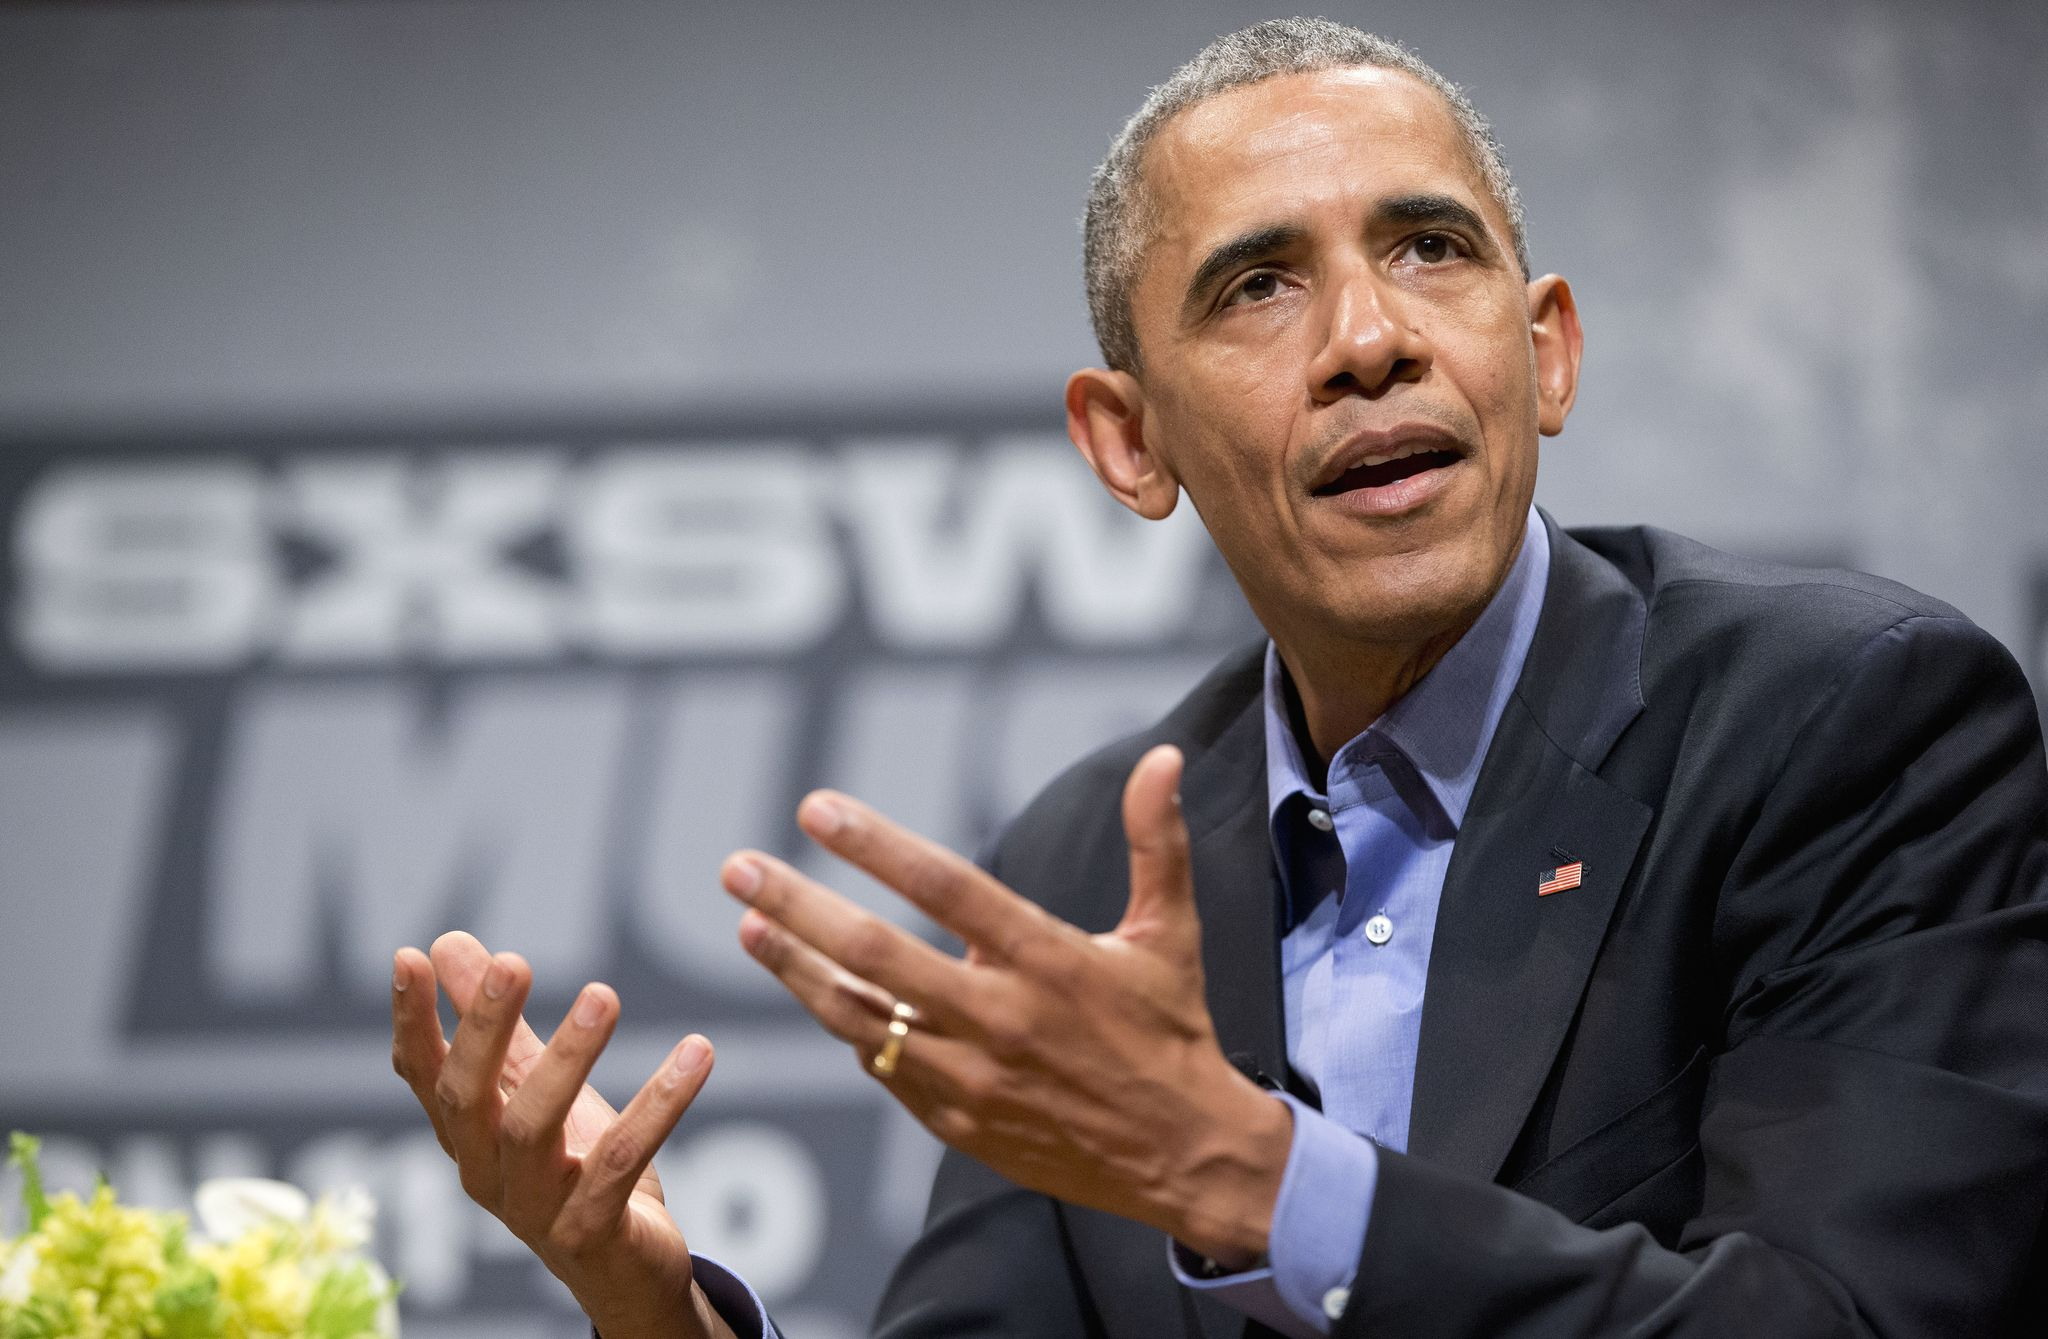 At SXSW, Obama thanks himself for the economic stimulus law